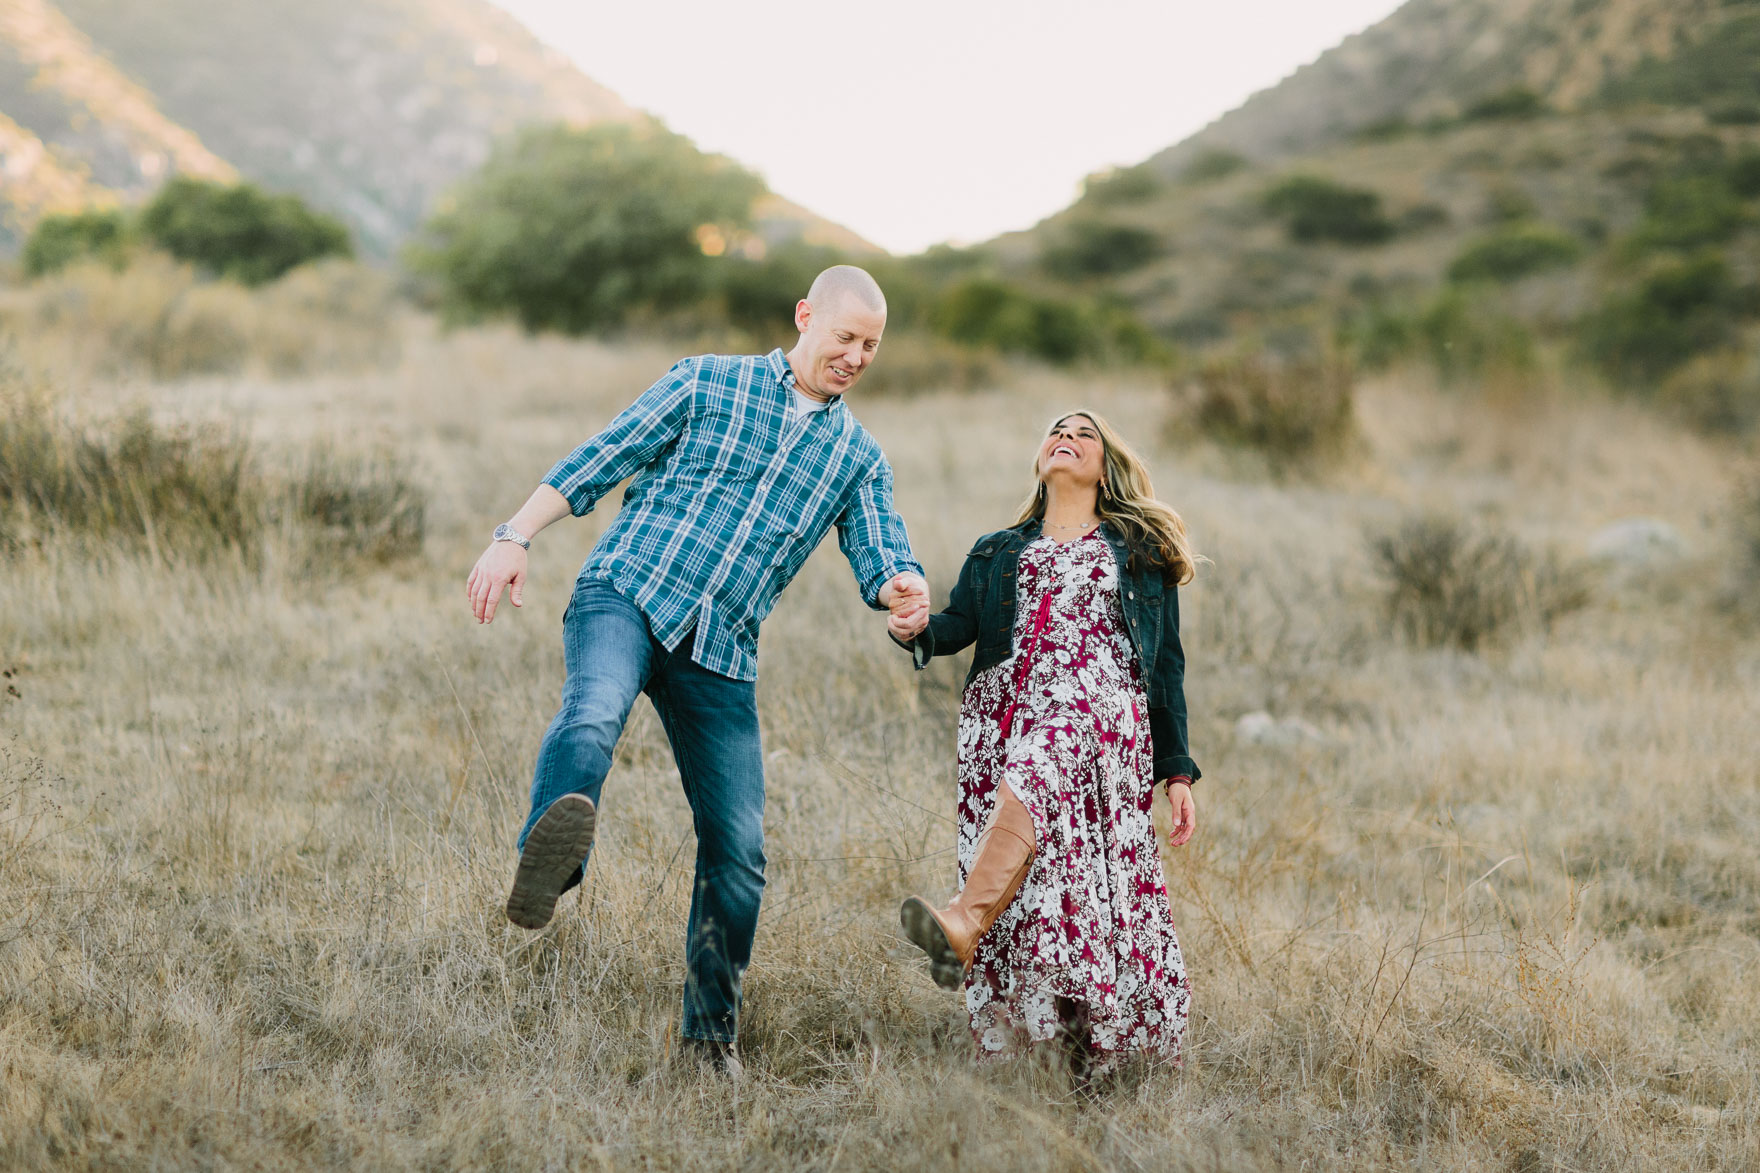 Silly, Tender, and Rustic Magic – Photo by Let's Frolic Together